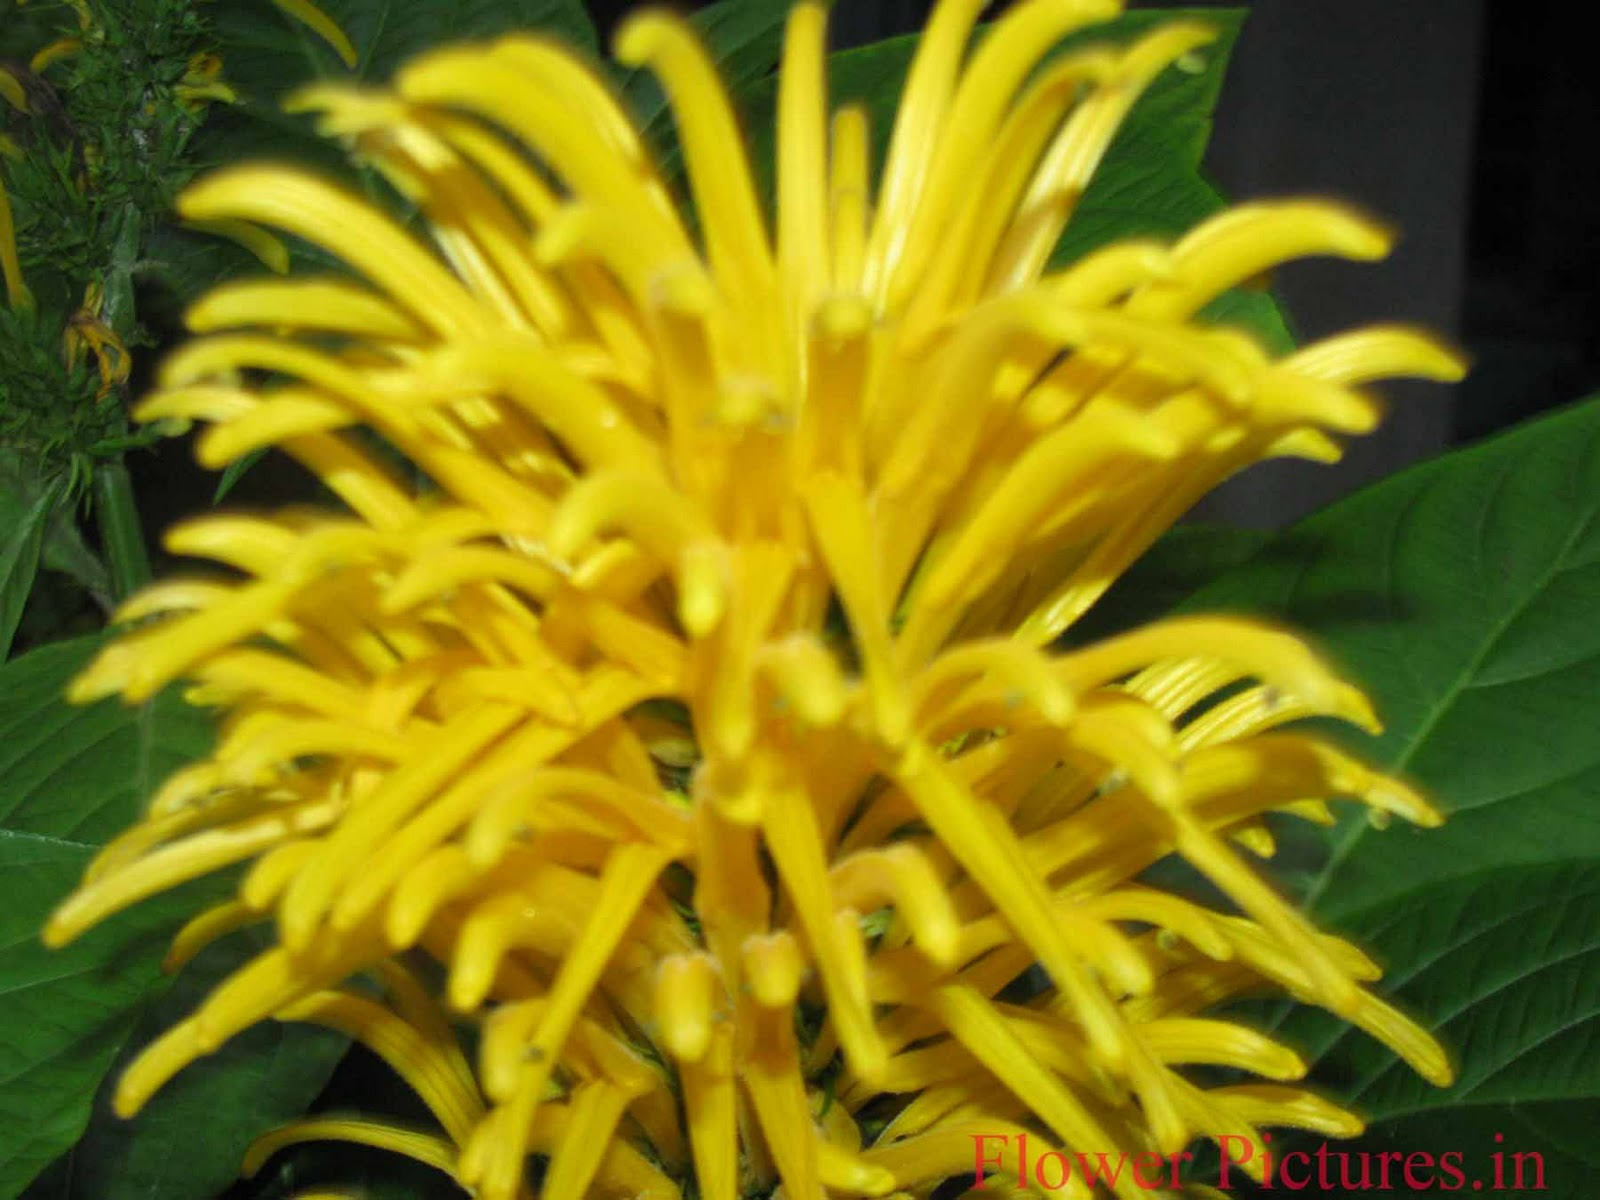 Flower pictures yellow flowers indian flowers